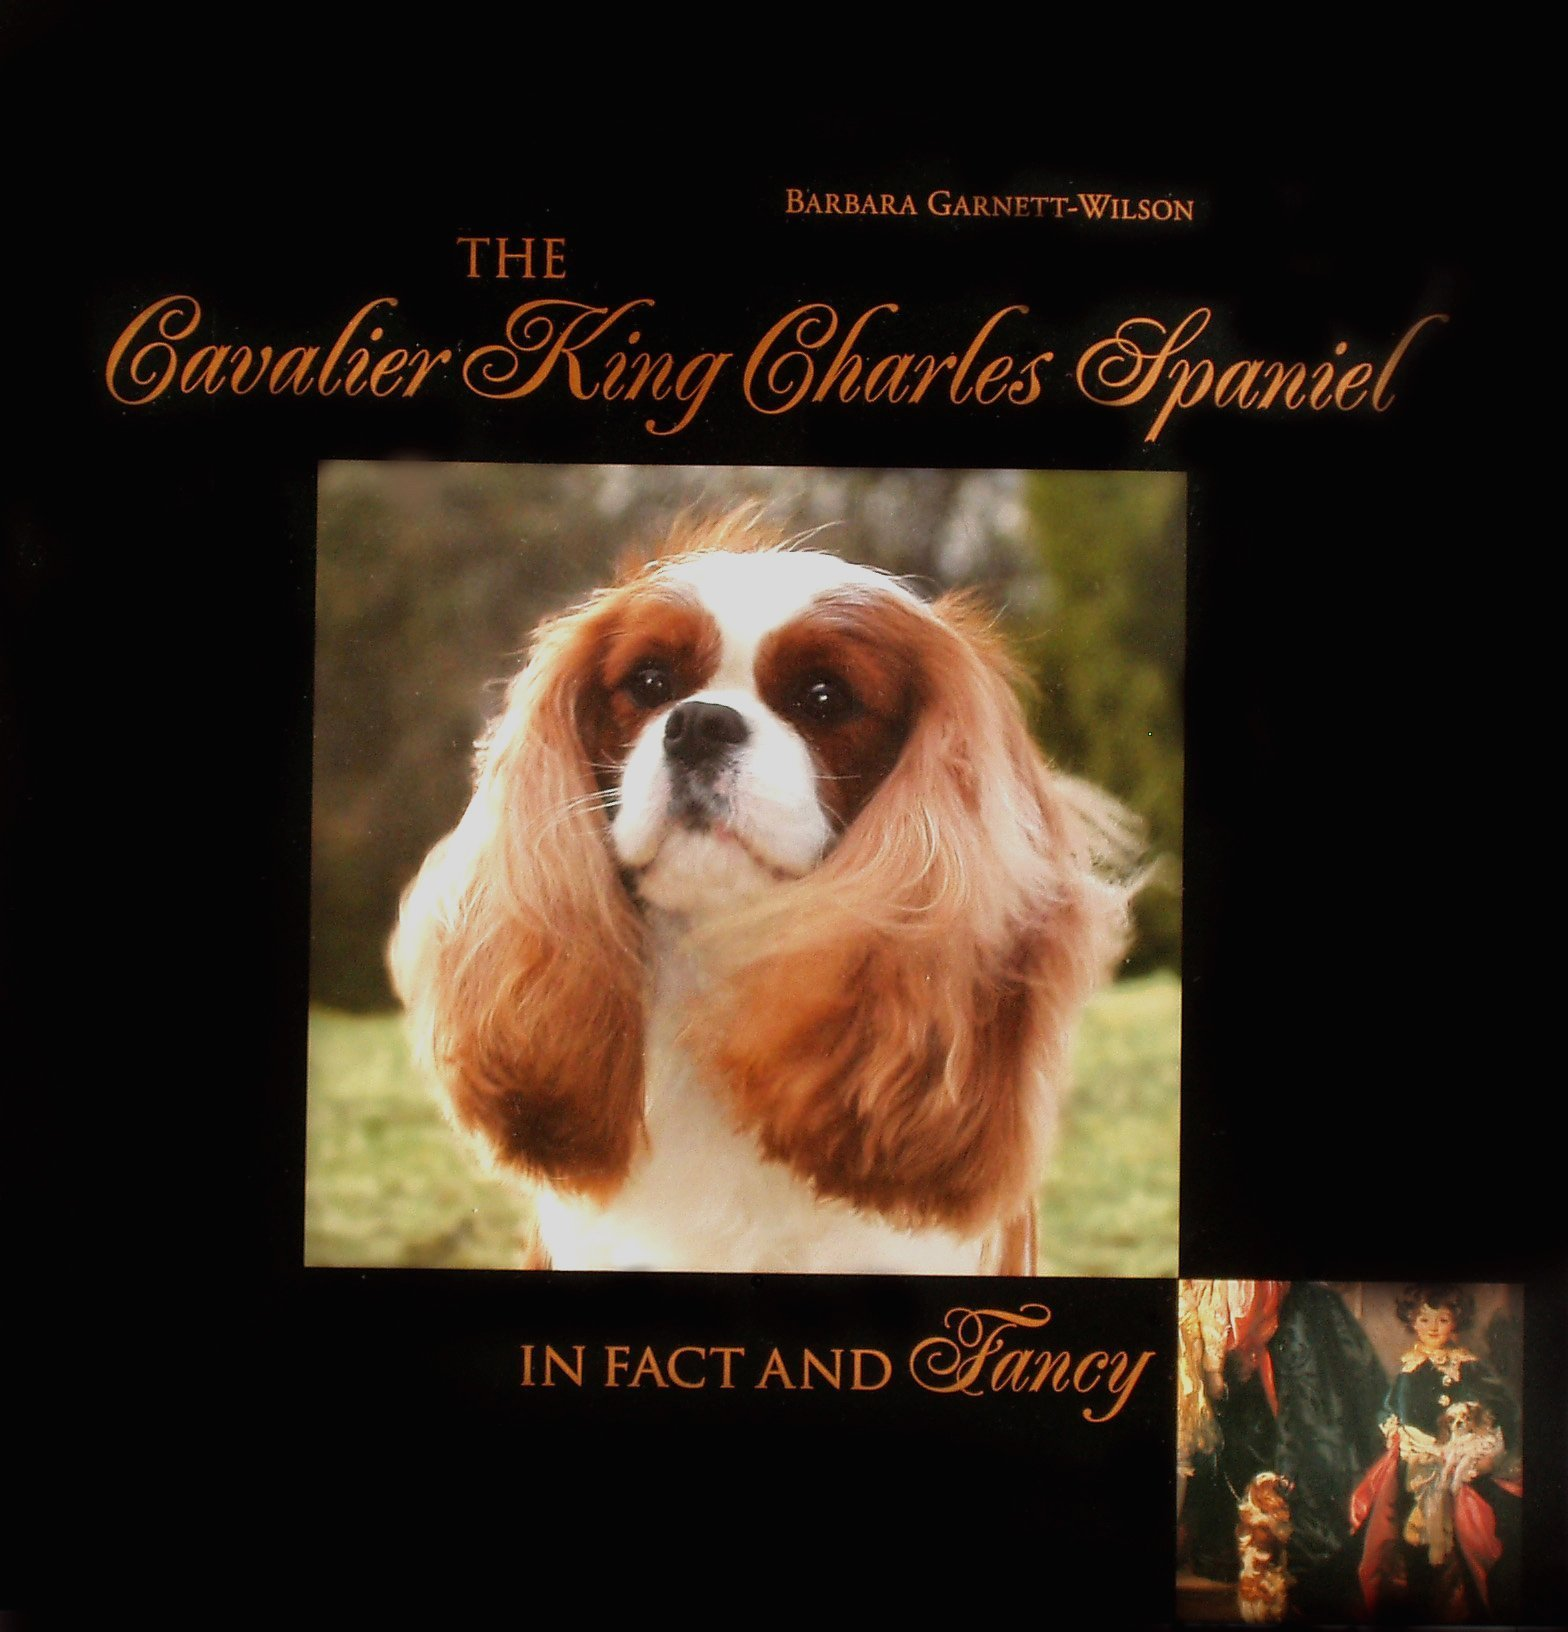 The cavalier king charles spaniel in fact and fancy barbara the cavalier king charles spaniel in fact and fancy barbara garnett wilson roy a wilson kenneth ottinger 9780966298512 amazon books nvjuhfo Image collections